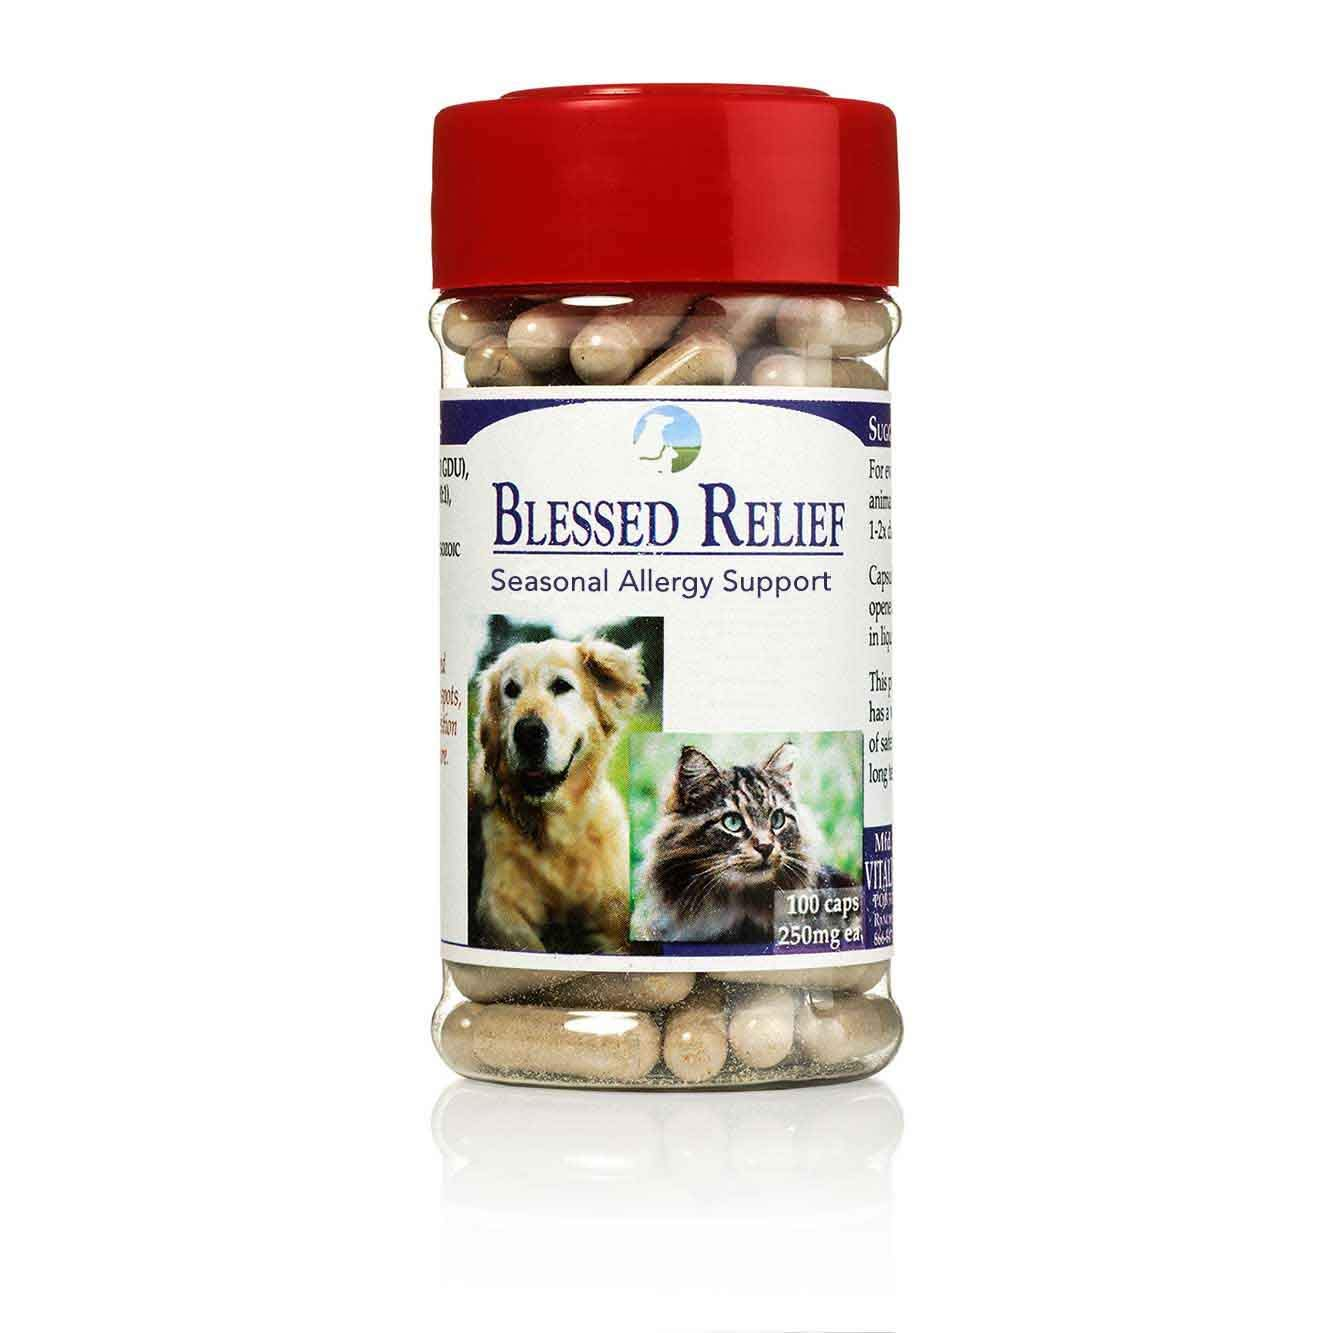 Vitality Science Blessed Relief for Cats Seasonal Allergy Support   100% Safe and Natural   Improves Skin Problems   Promotes Normal Respiratory Function   Reduces Inflammation   Boosts Immune Health by Vitality Science